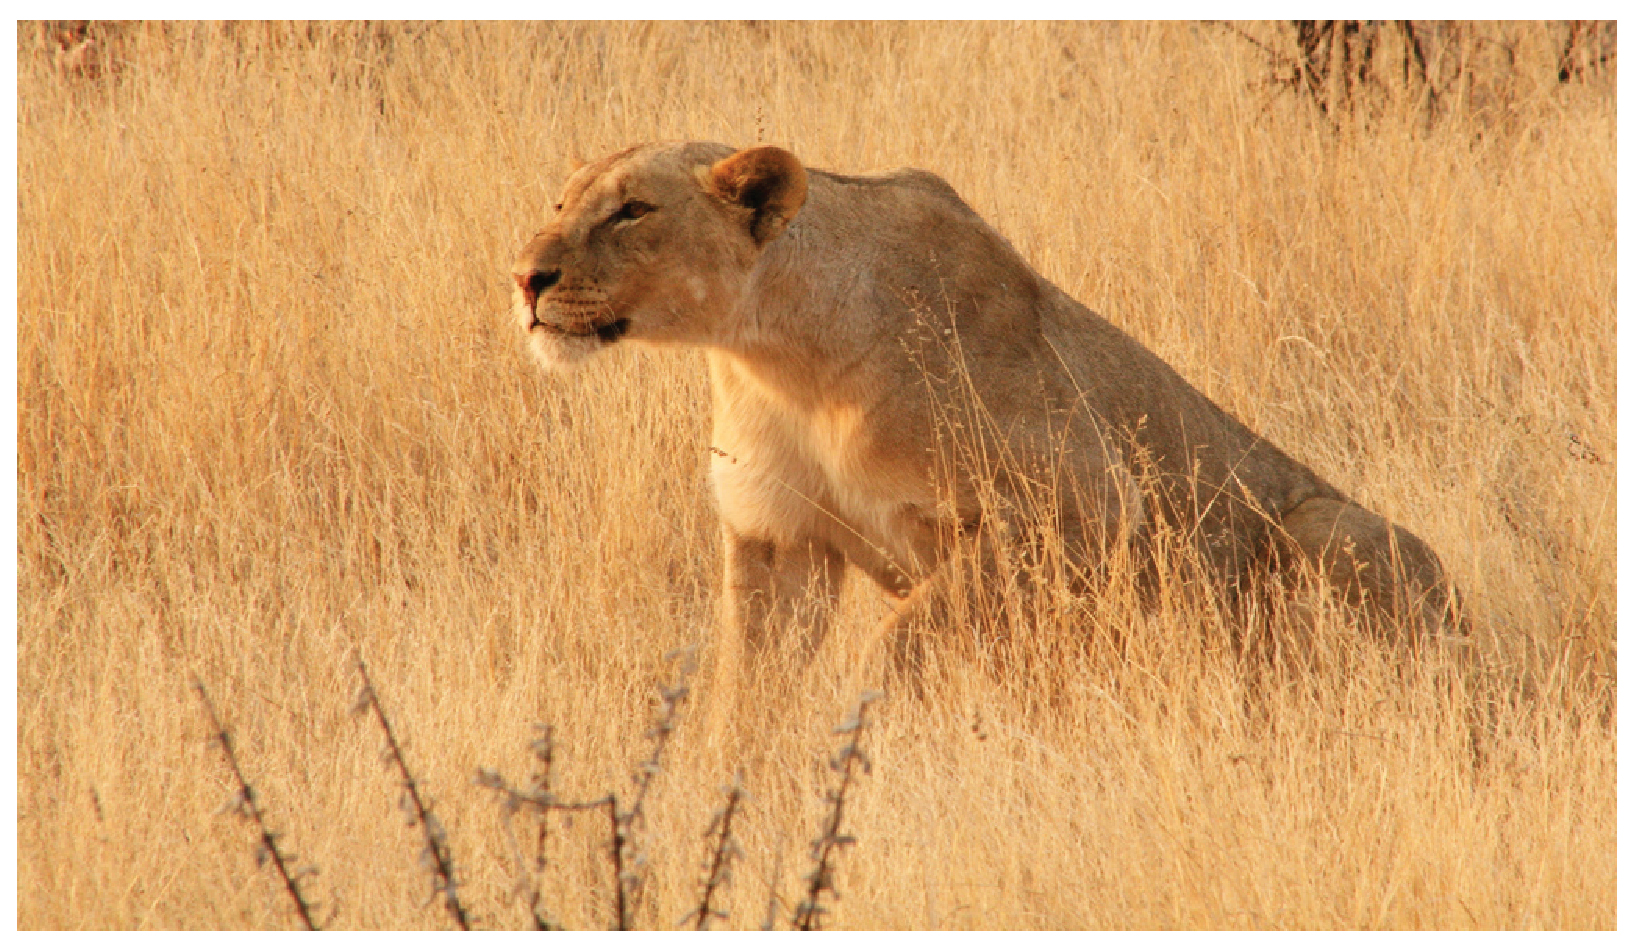 This photograph shows a lioness.